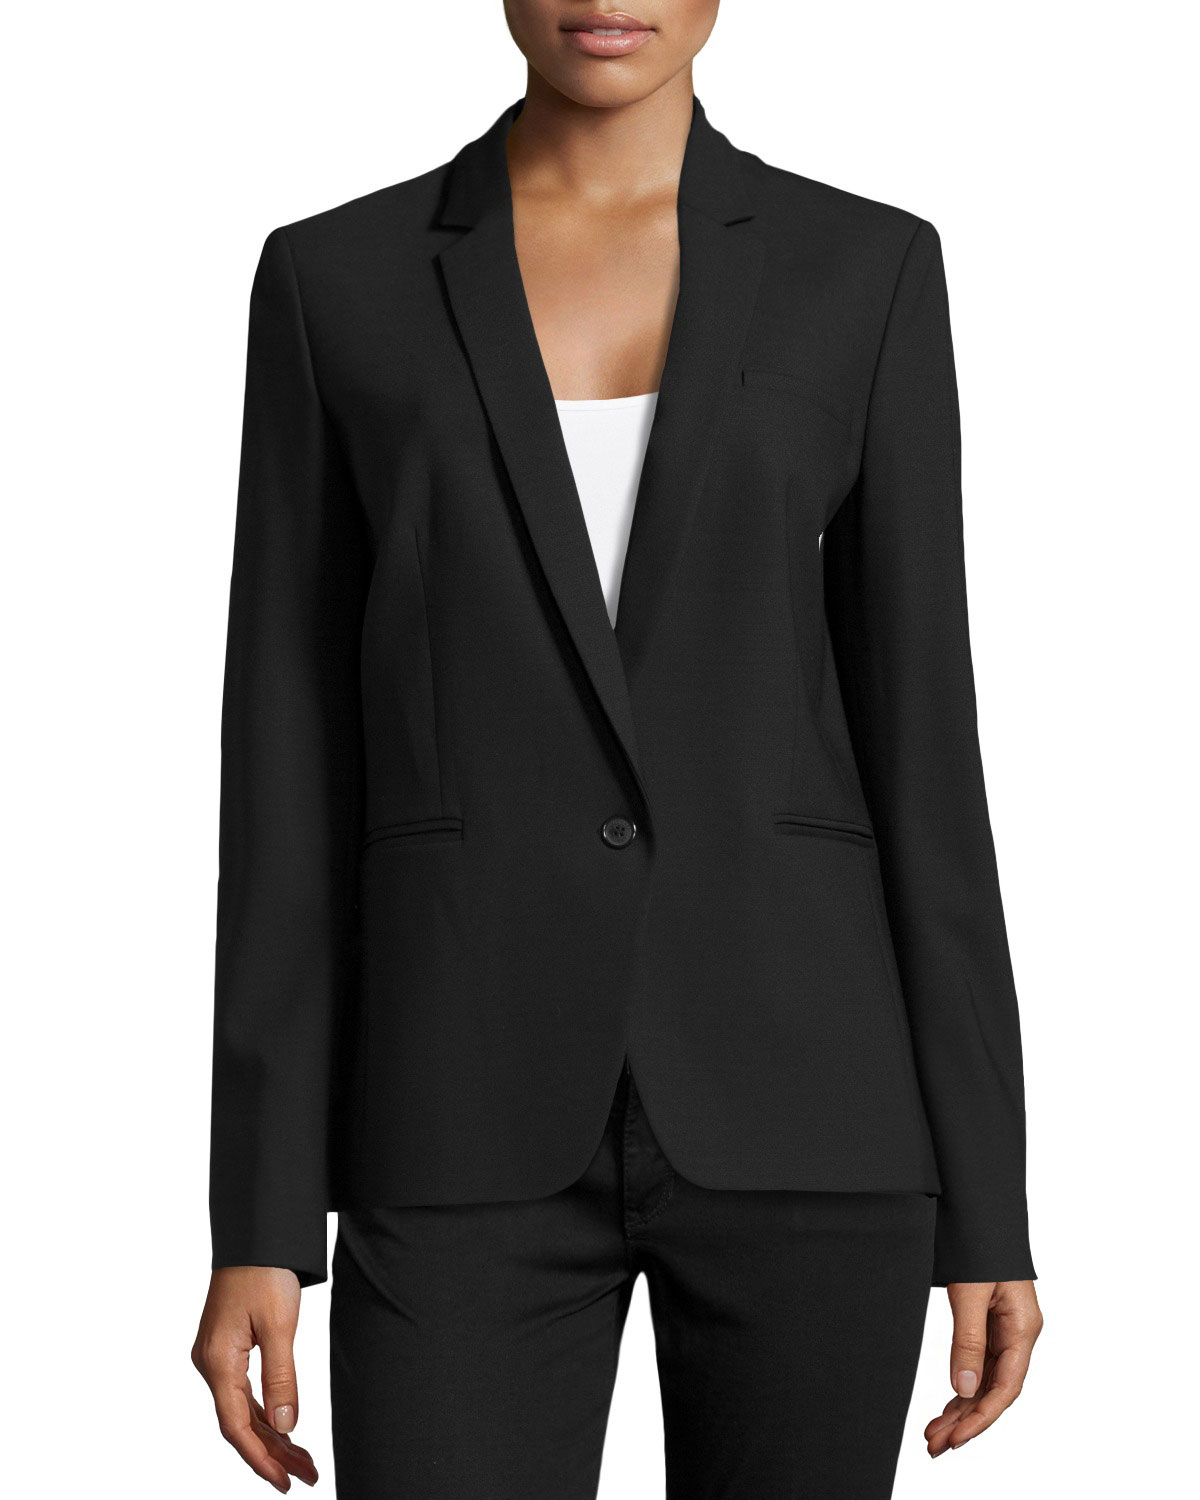 michael kors one button blazer in black lyst. Black Bedroom Furniture Sets. Home Design Ideas